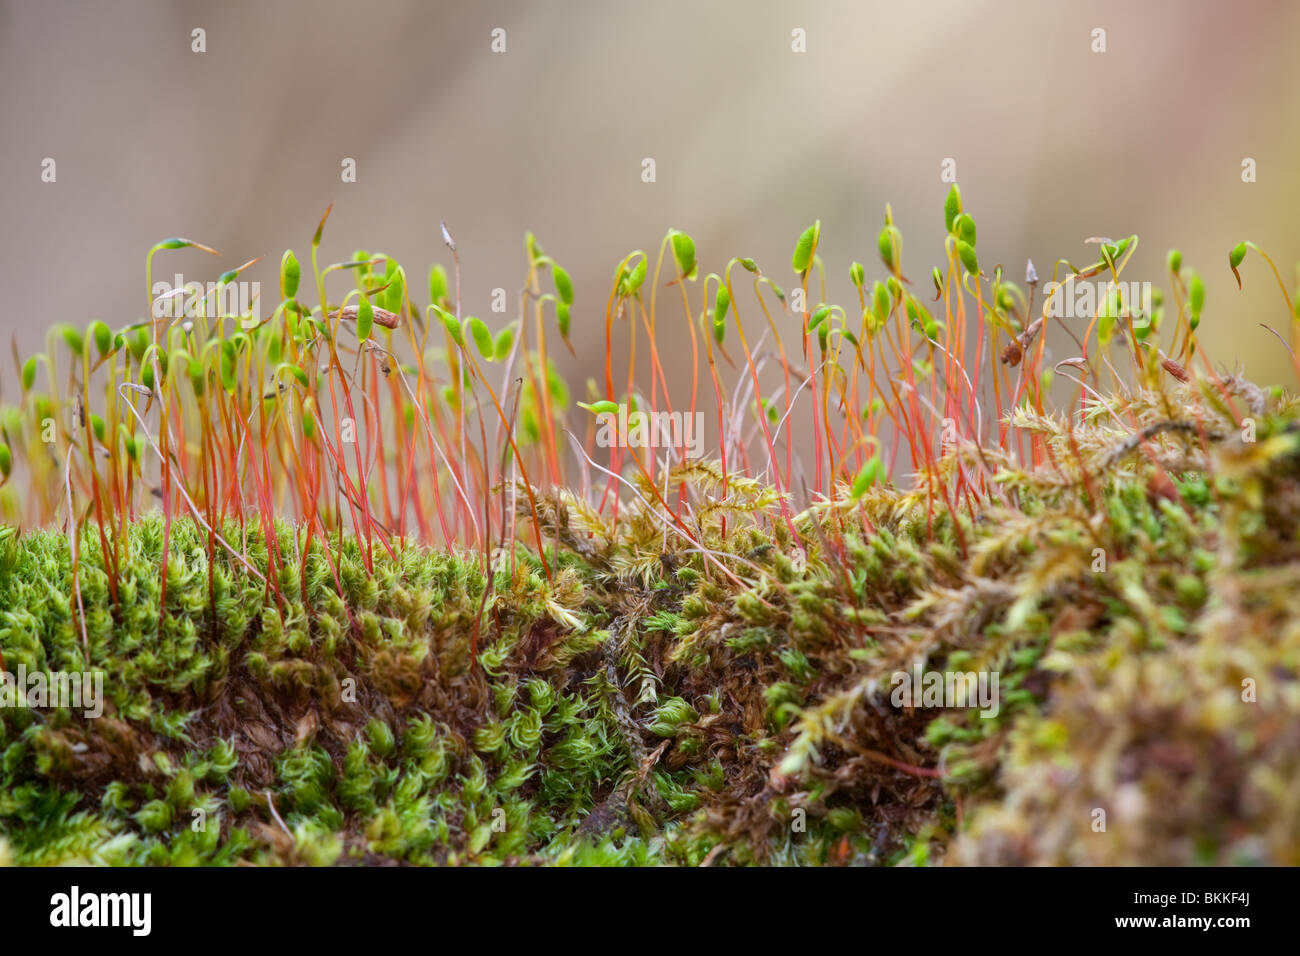 Moss species fruiting bodies - Stock Image